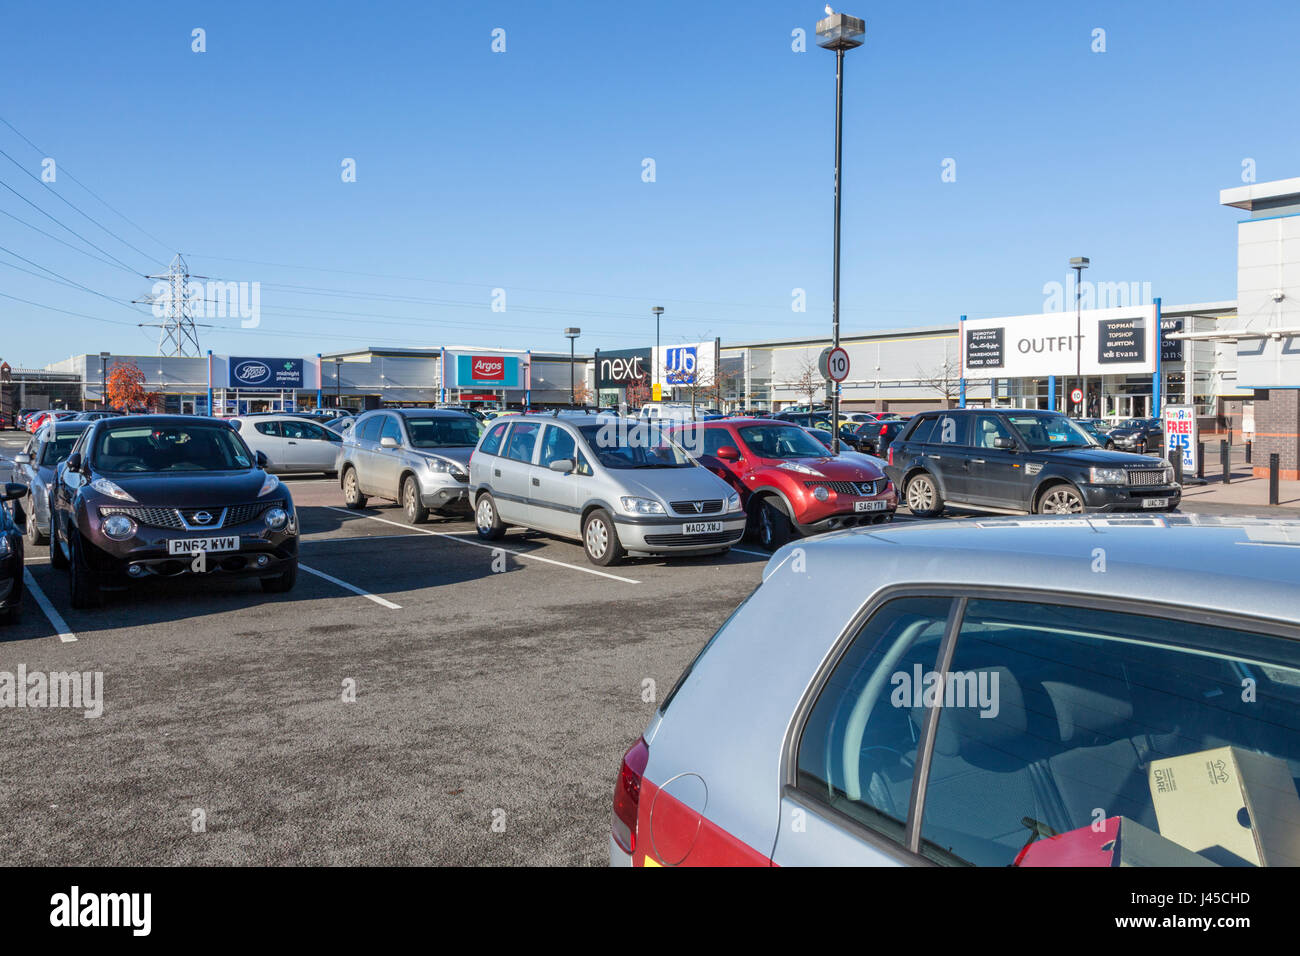 Car parking and stores at the Riverside Retail Park, Nottingham, England, UK - Stock Image